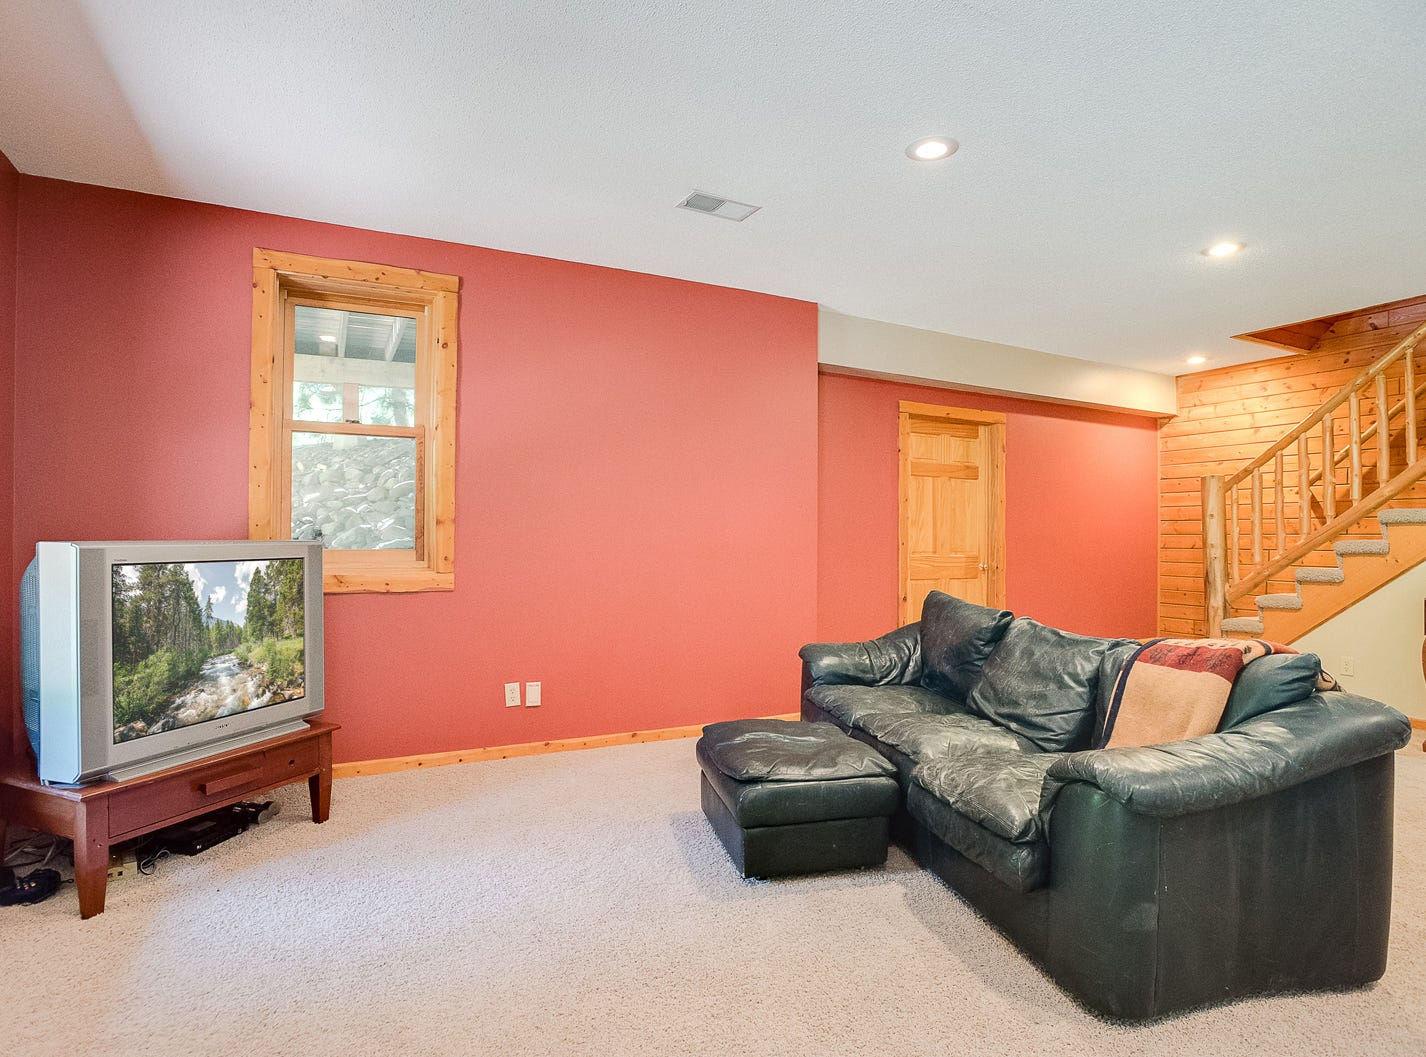 The lower level of the home is finished with a large family room featuring heated floors.